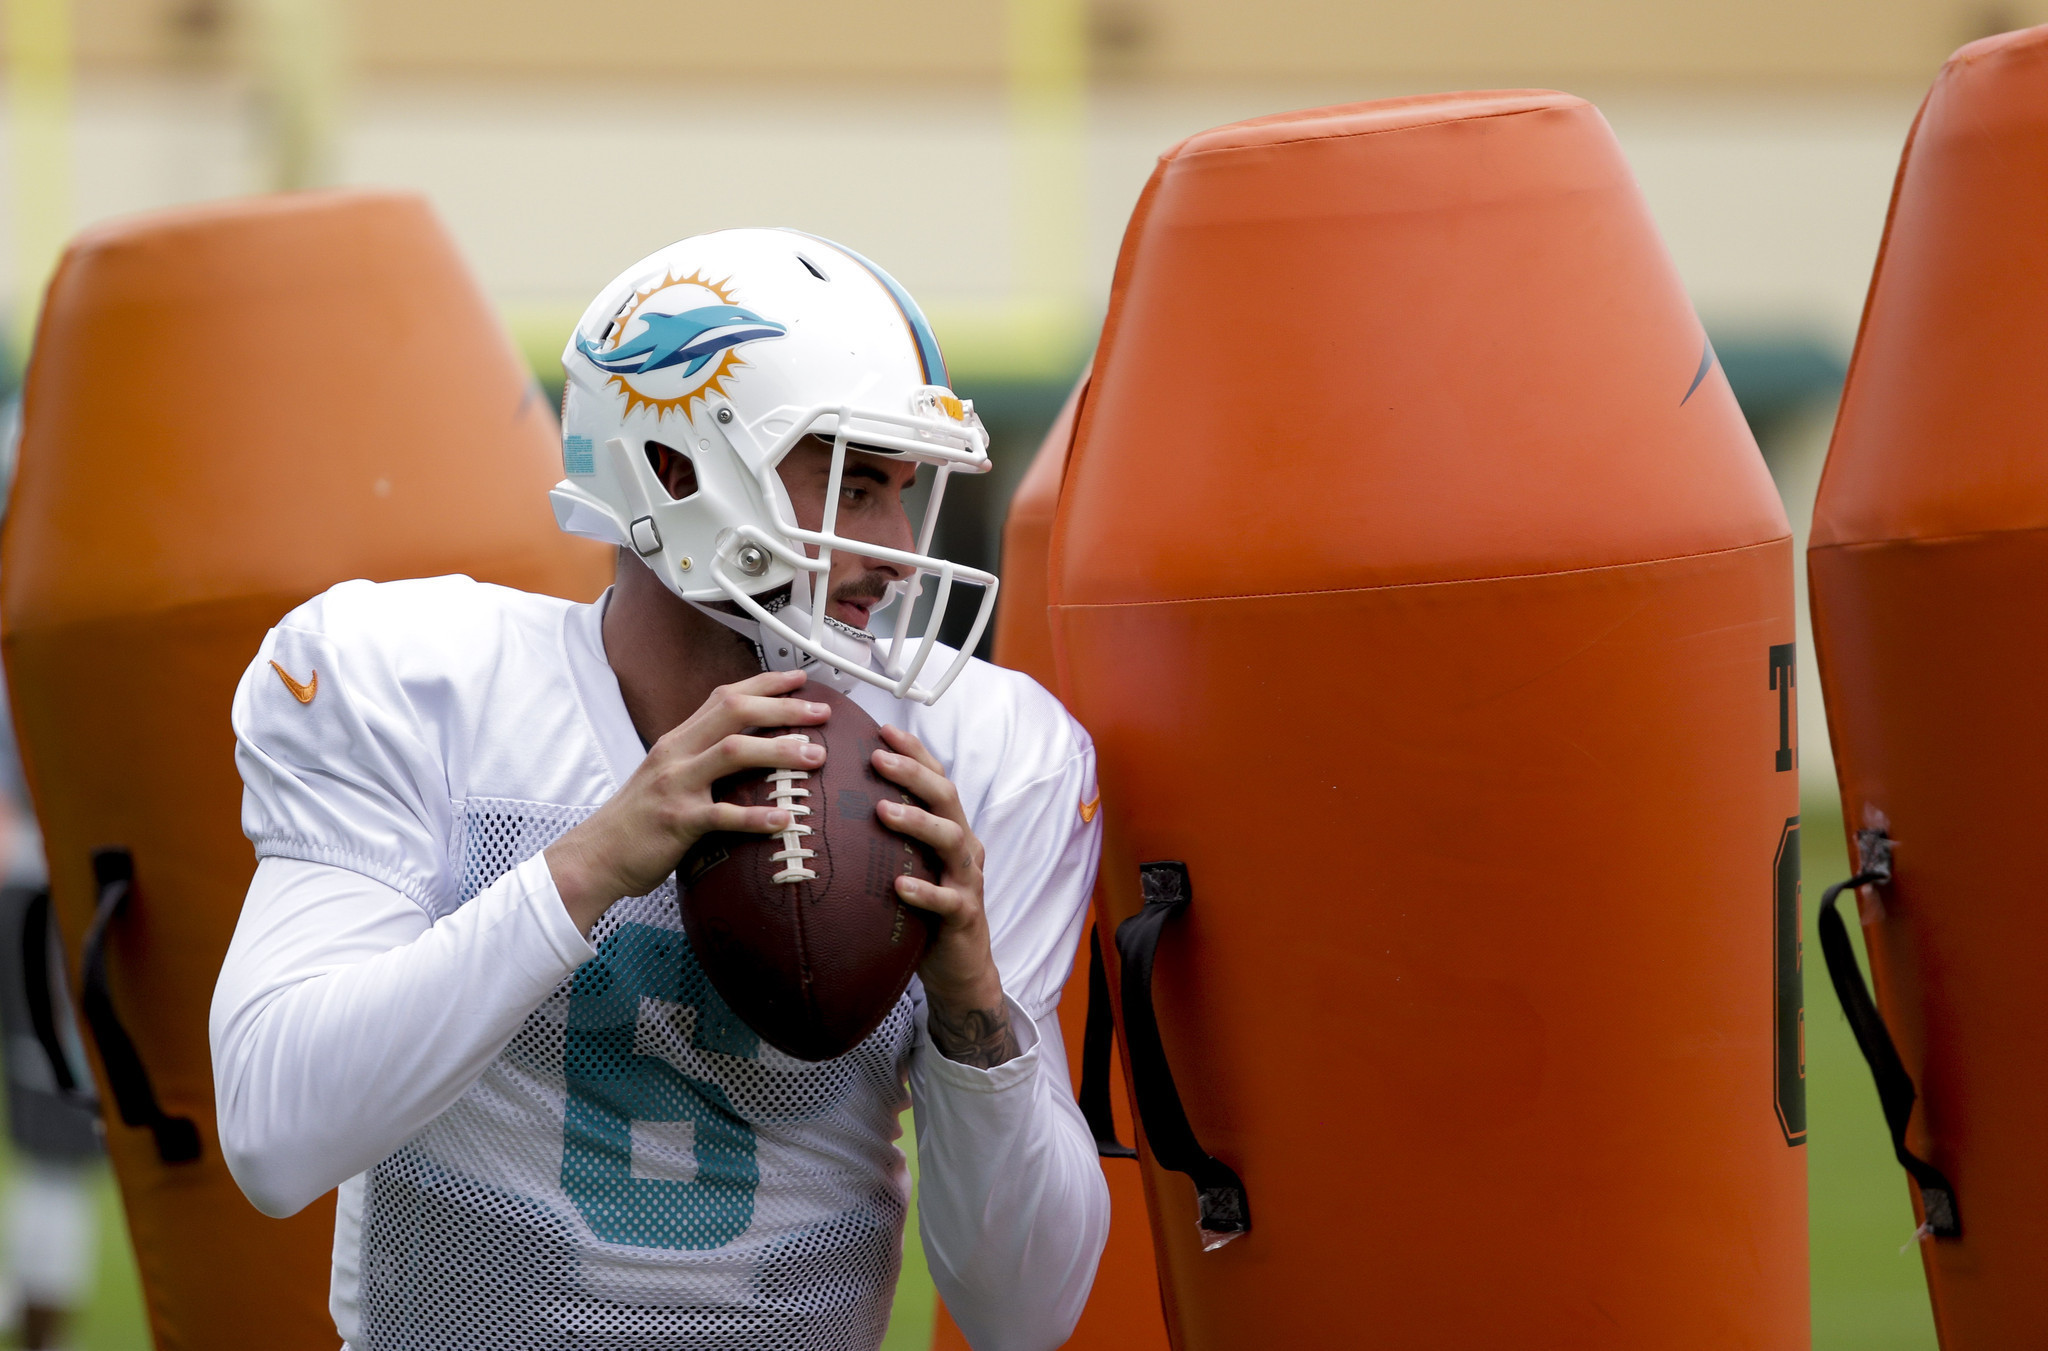 Sfl-dolphins-rookie-qb-brandon-doughty-now-a-member-of-his-favorite-team-20160909